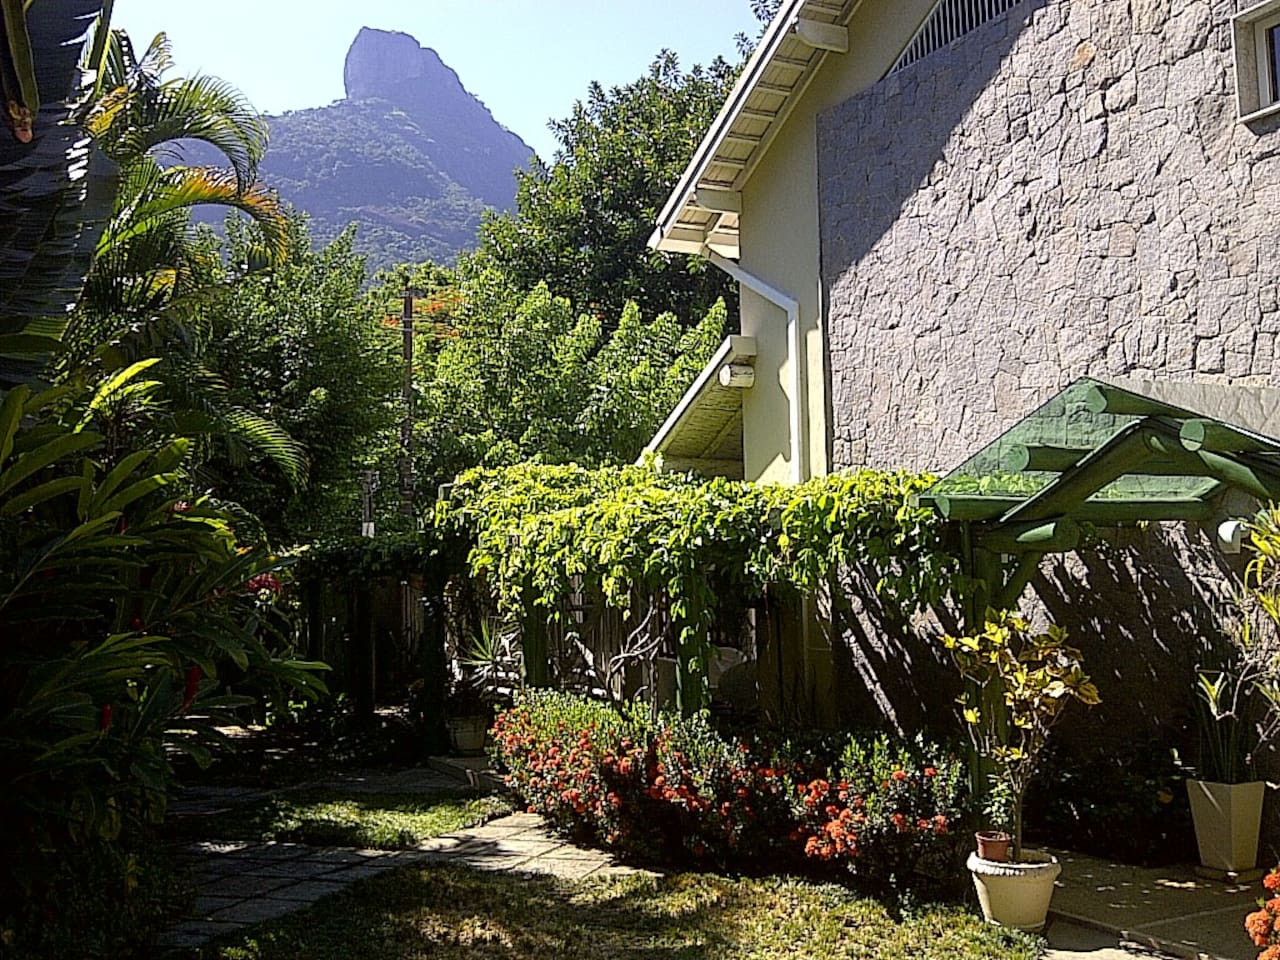 Garden with view of Pedra da Gávea